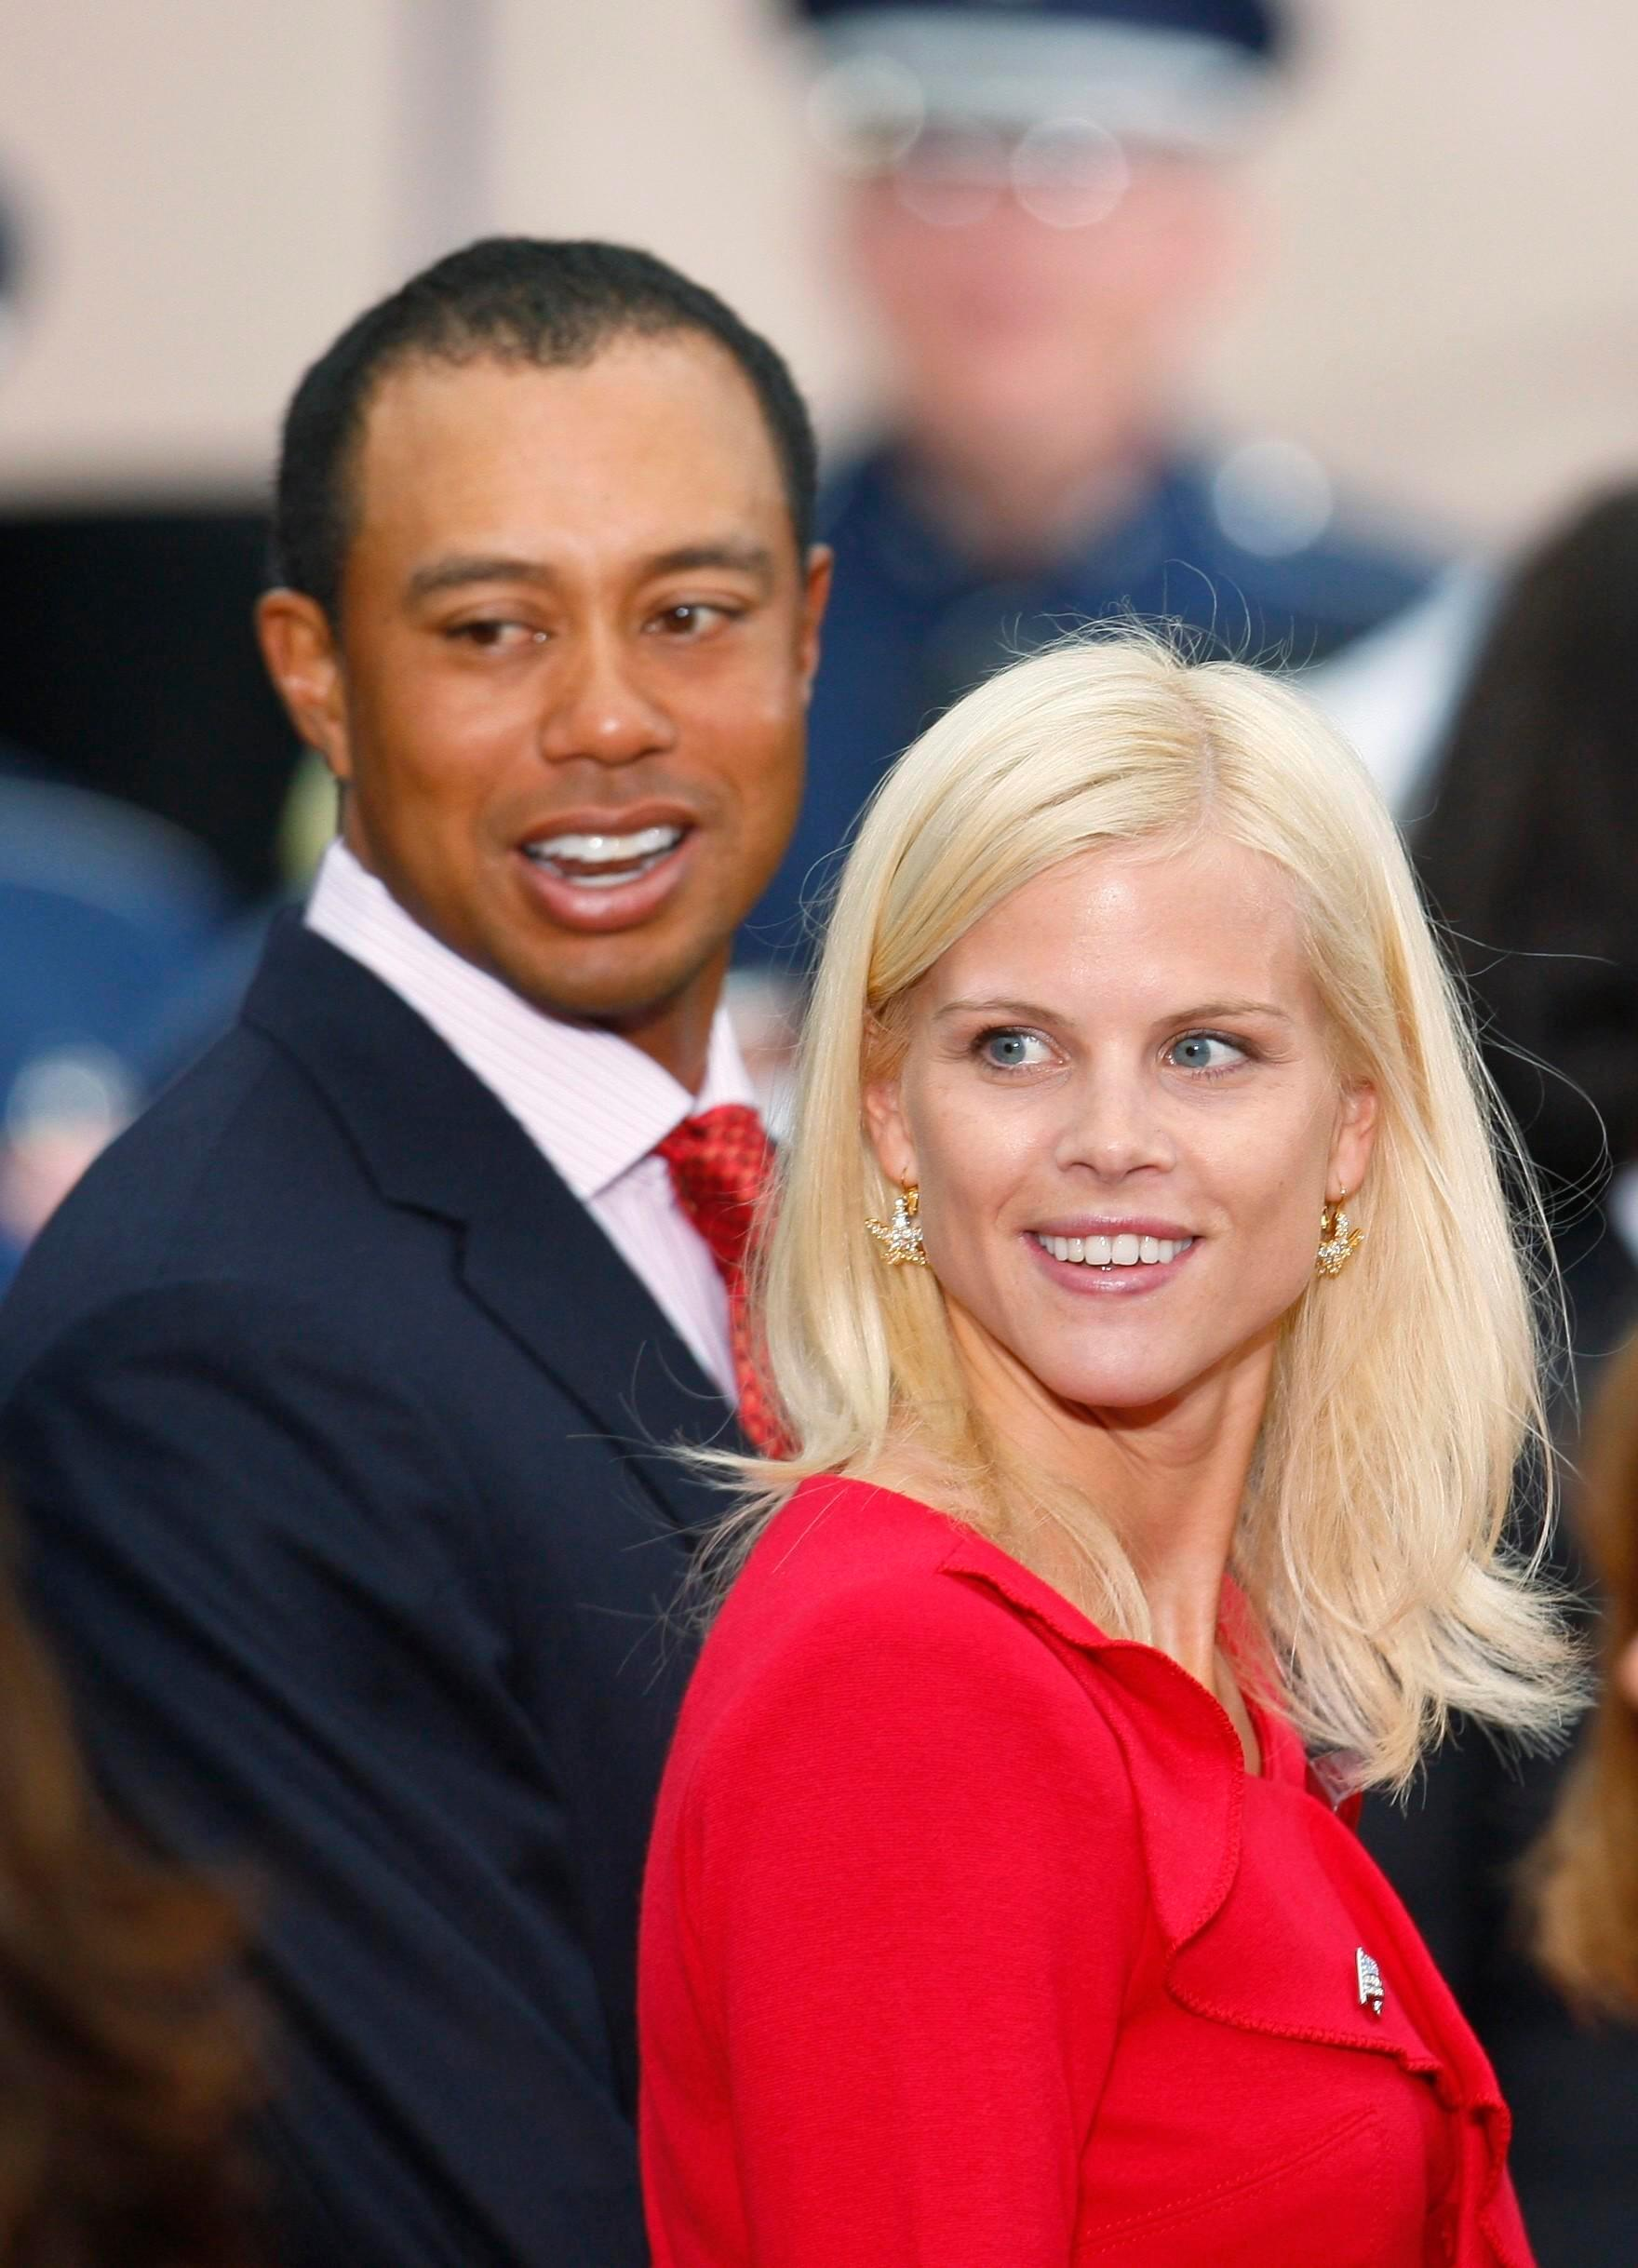 Tiger woods divorced